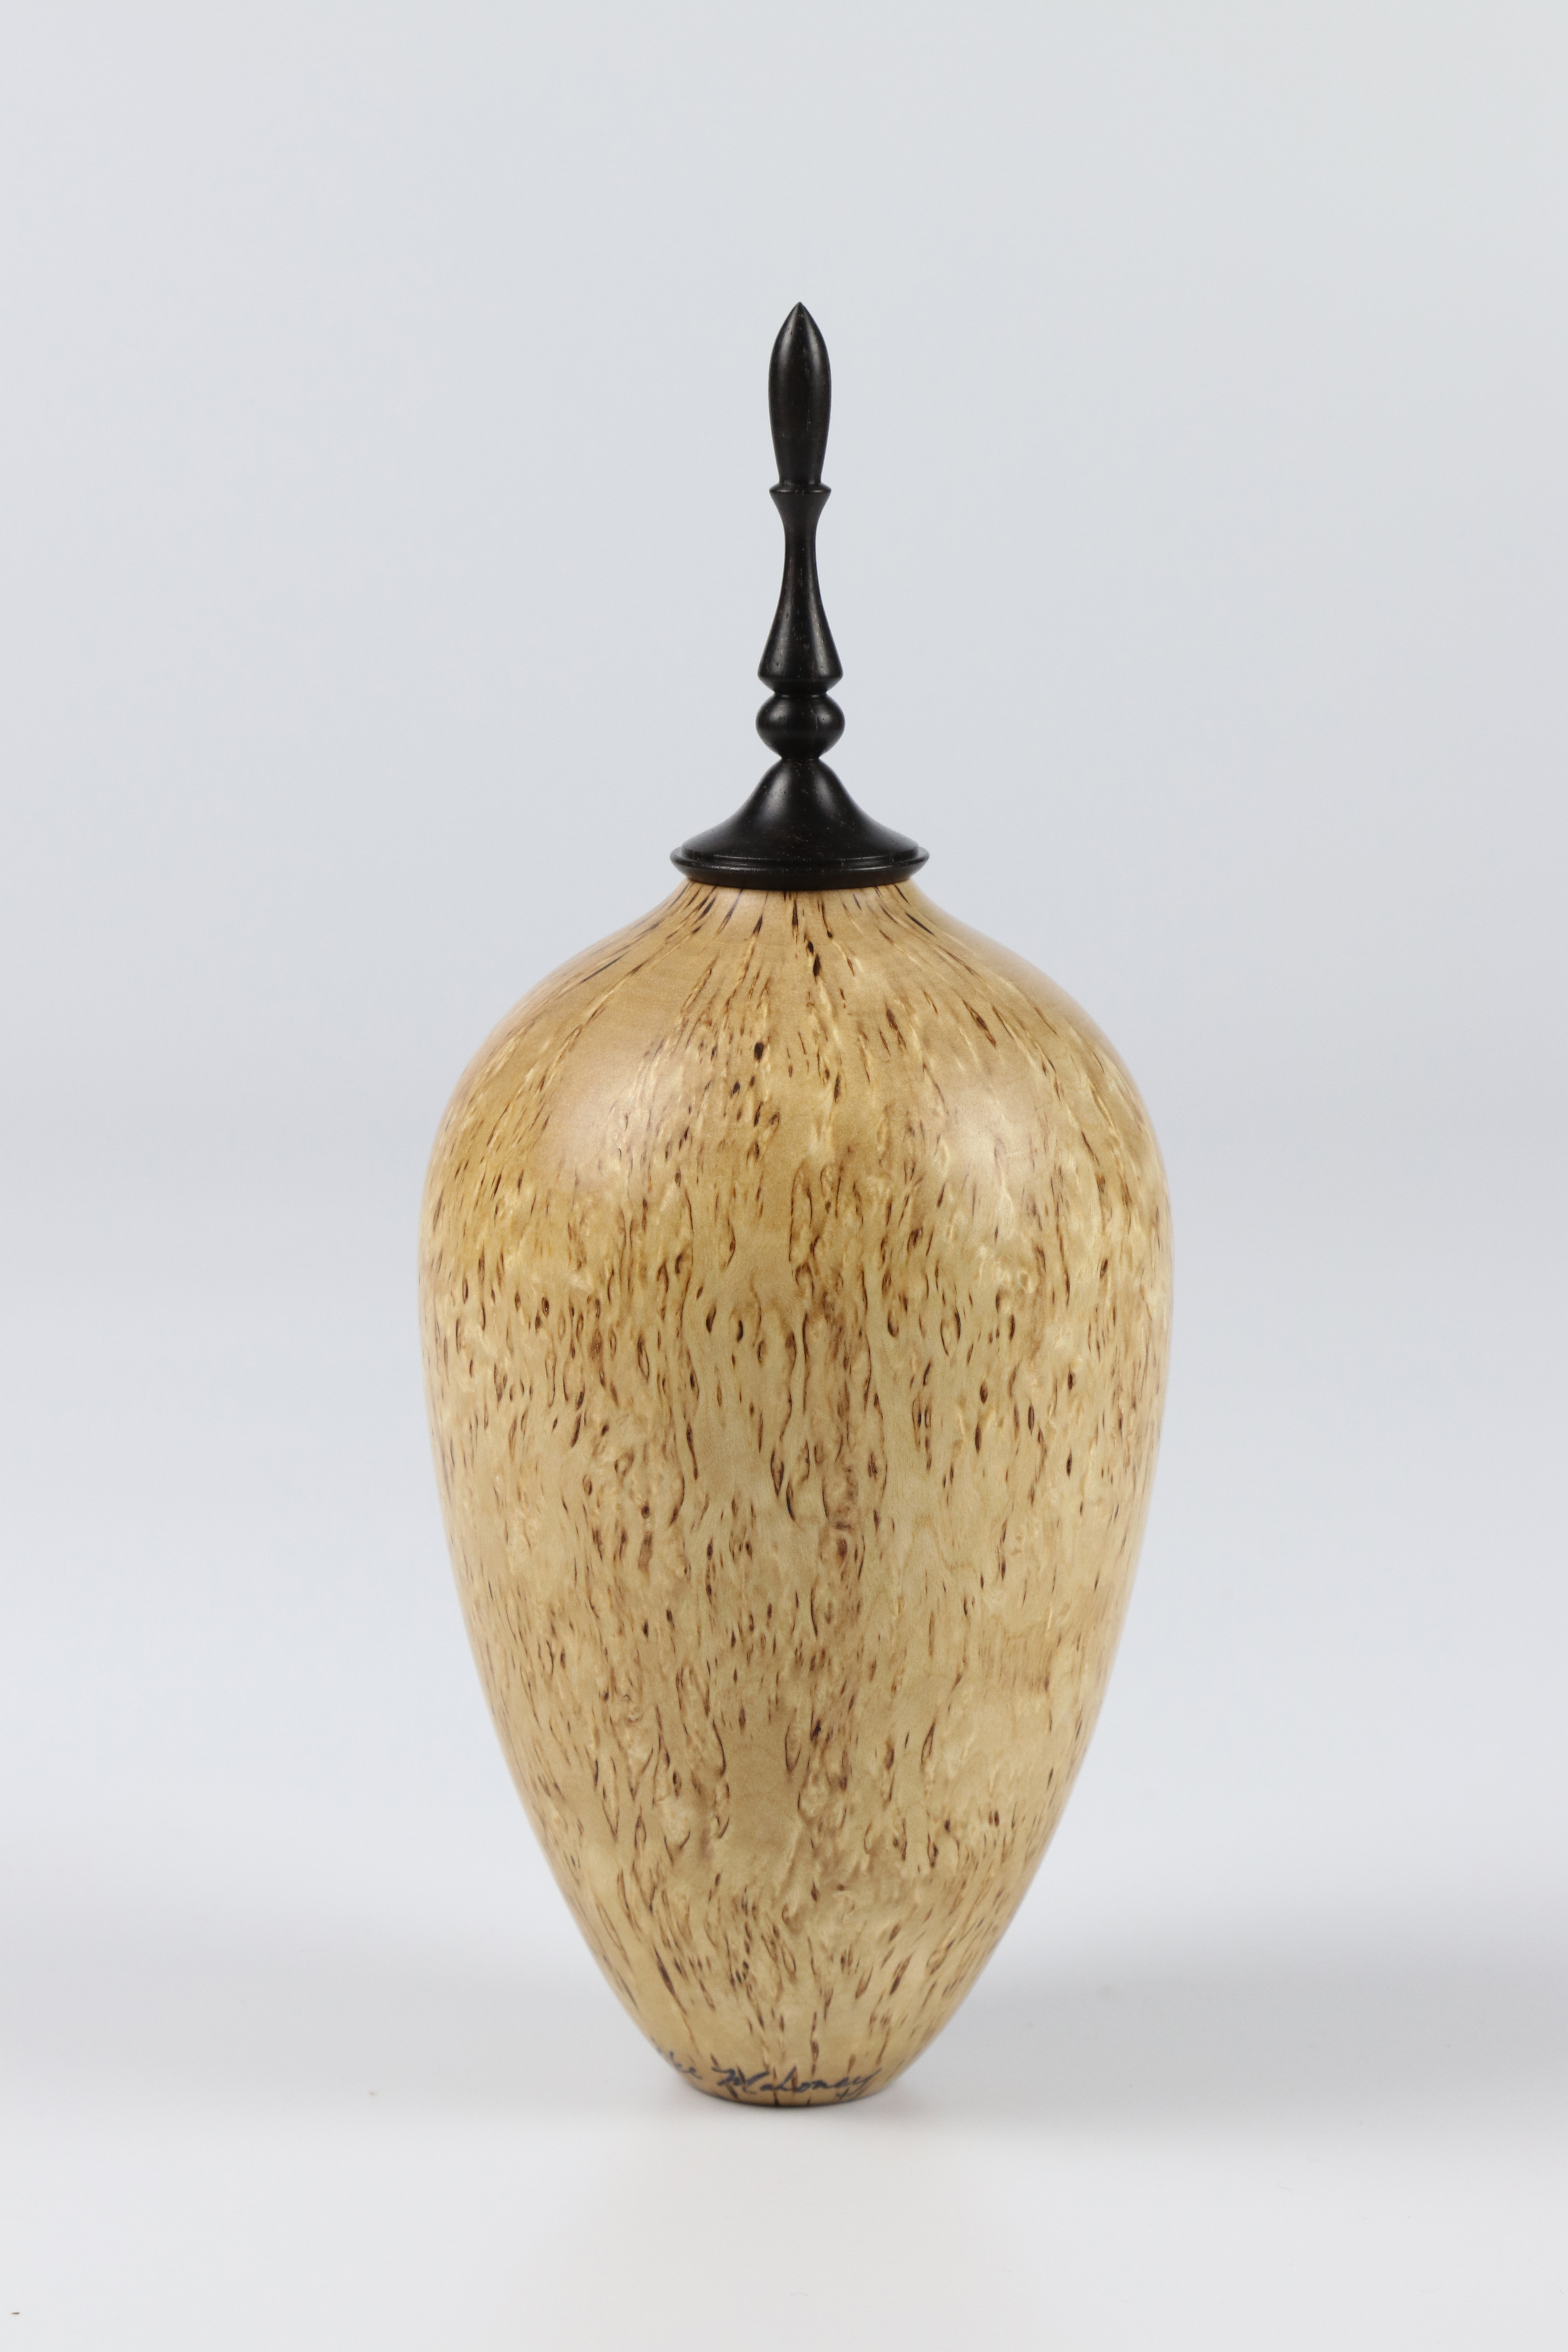 Lot 82 - Mike Mahoney (USA) masur birch hollow form 19x7cm. Signed